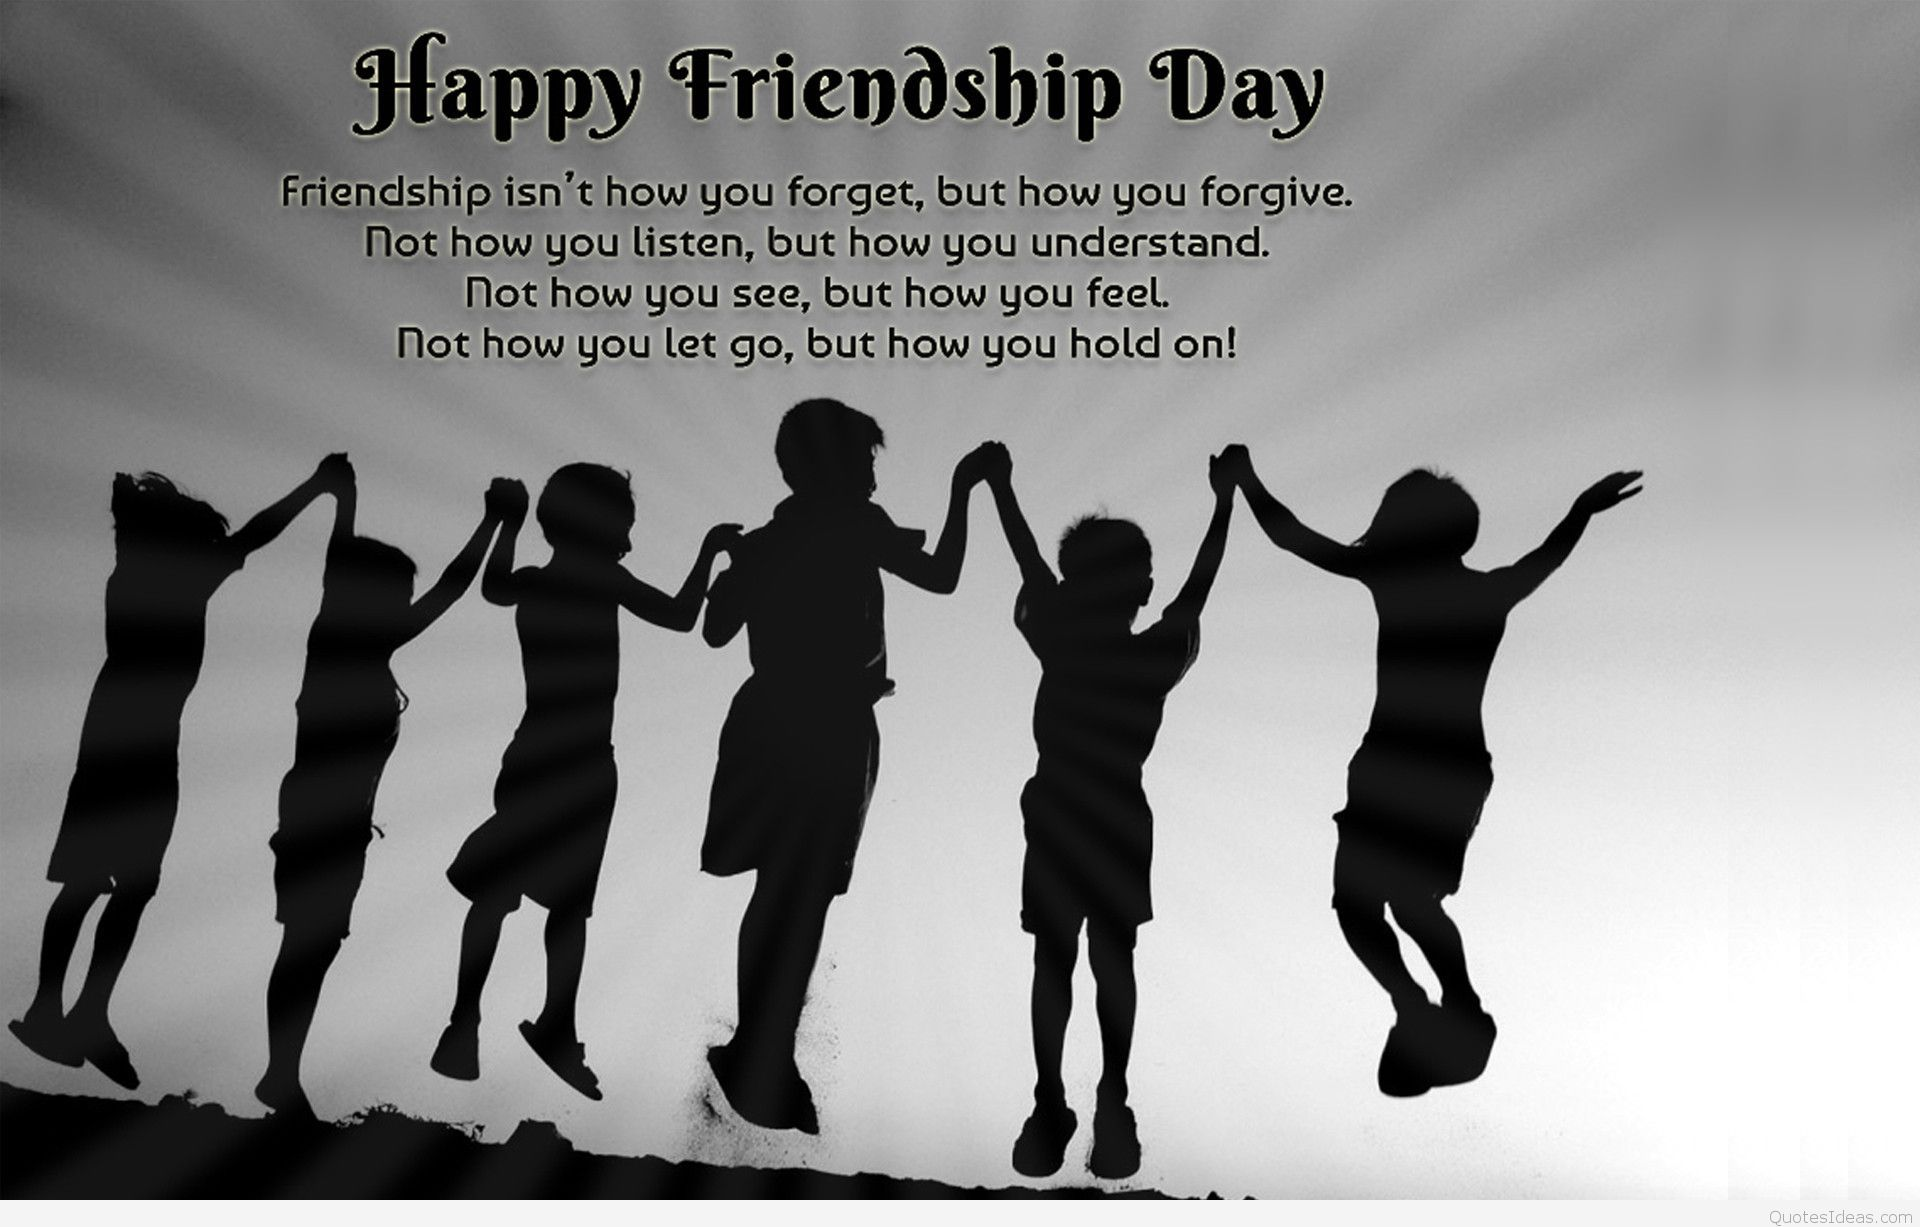 best ideas about friendship day wishes 17 best ideas about friendship day wishes friendship day greetings happy friendship day status and friendship day